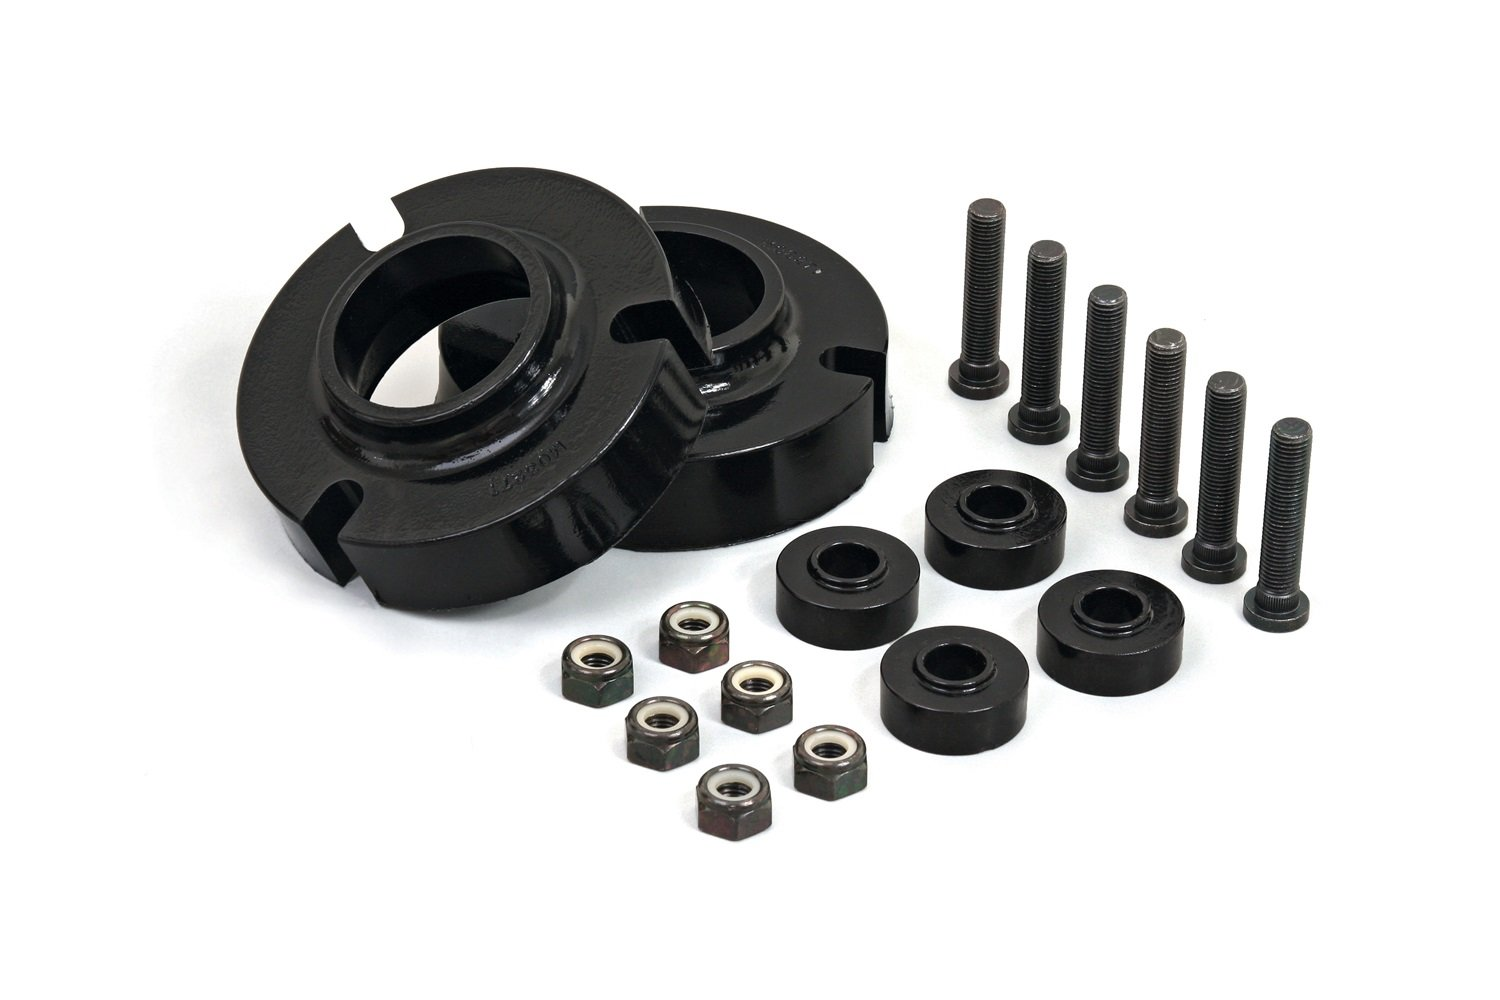 Ford F150 1.5 Leveling Kit all transmissions fits 1997 to 2003 2WD all cabs KF09105BK Made in America Daystar